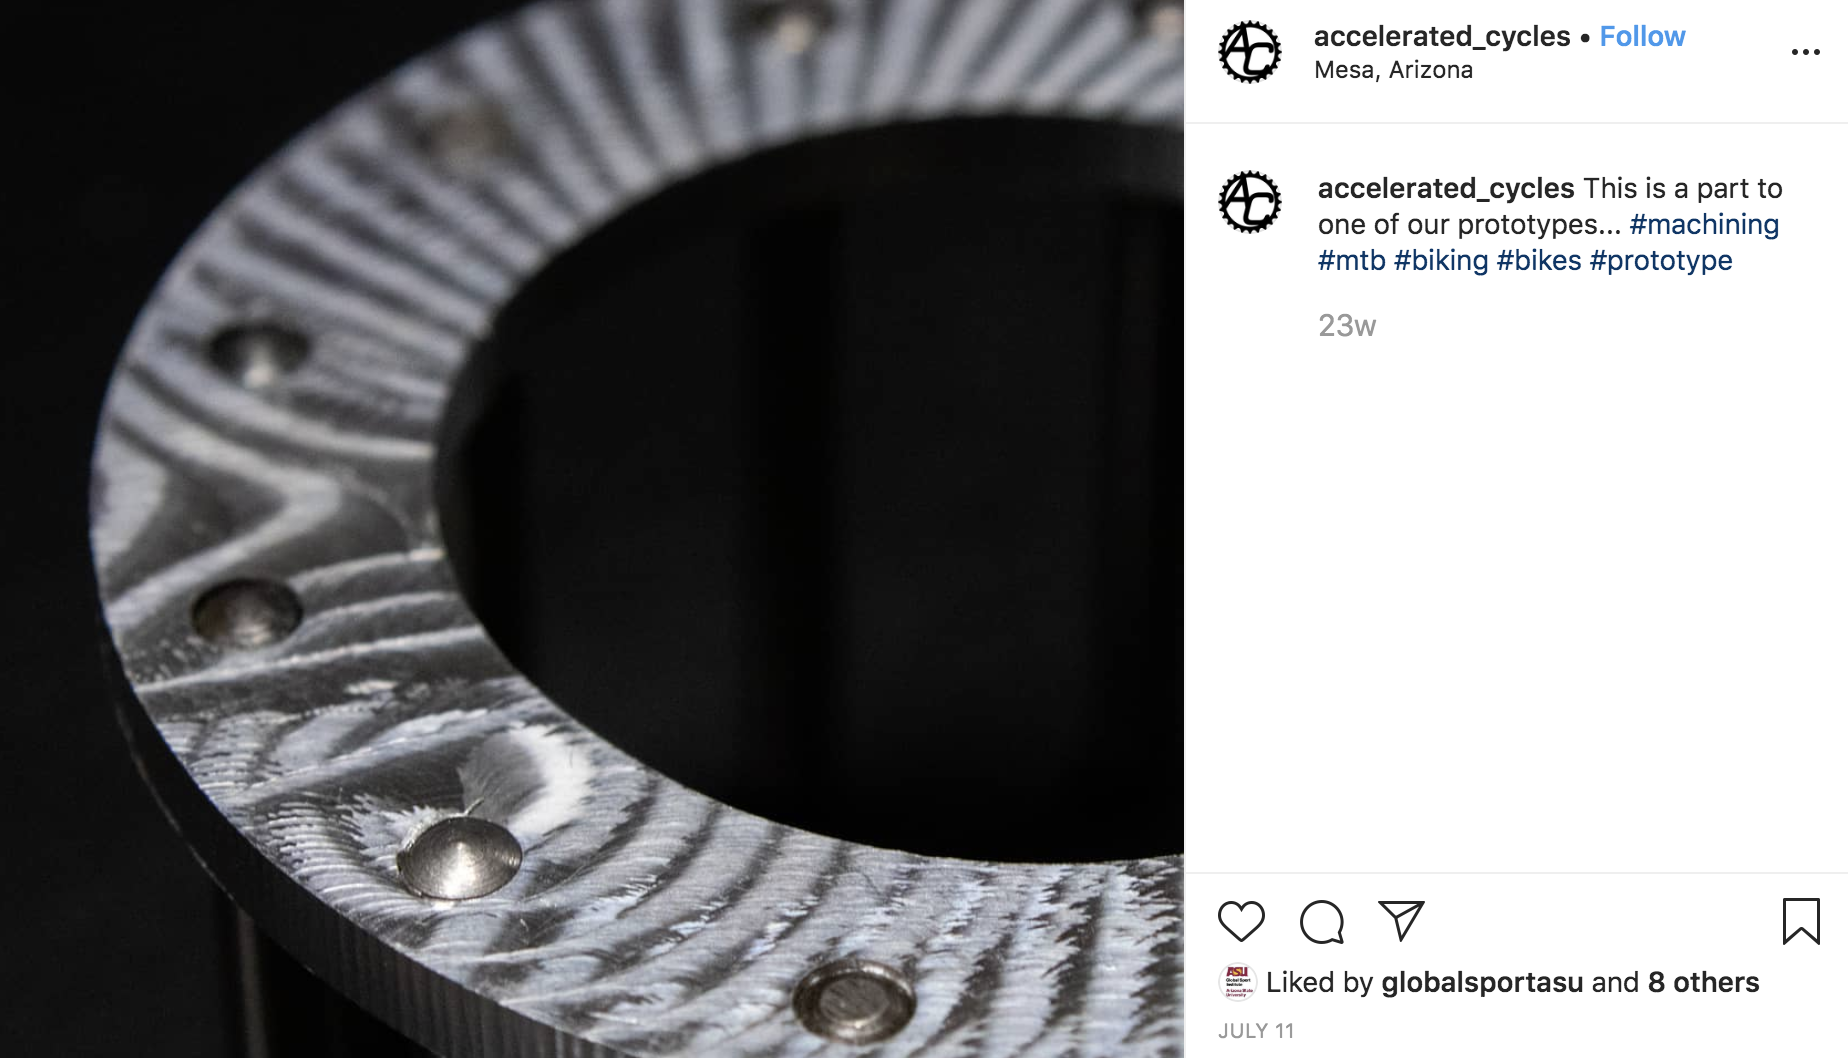 Instagram post from Accelerated Cycles that shows a close-up of a machine prototype.